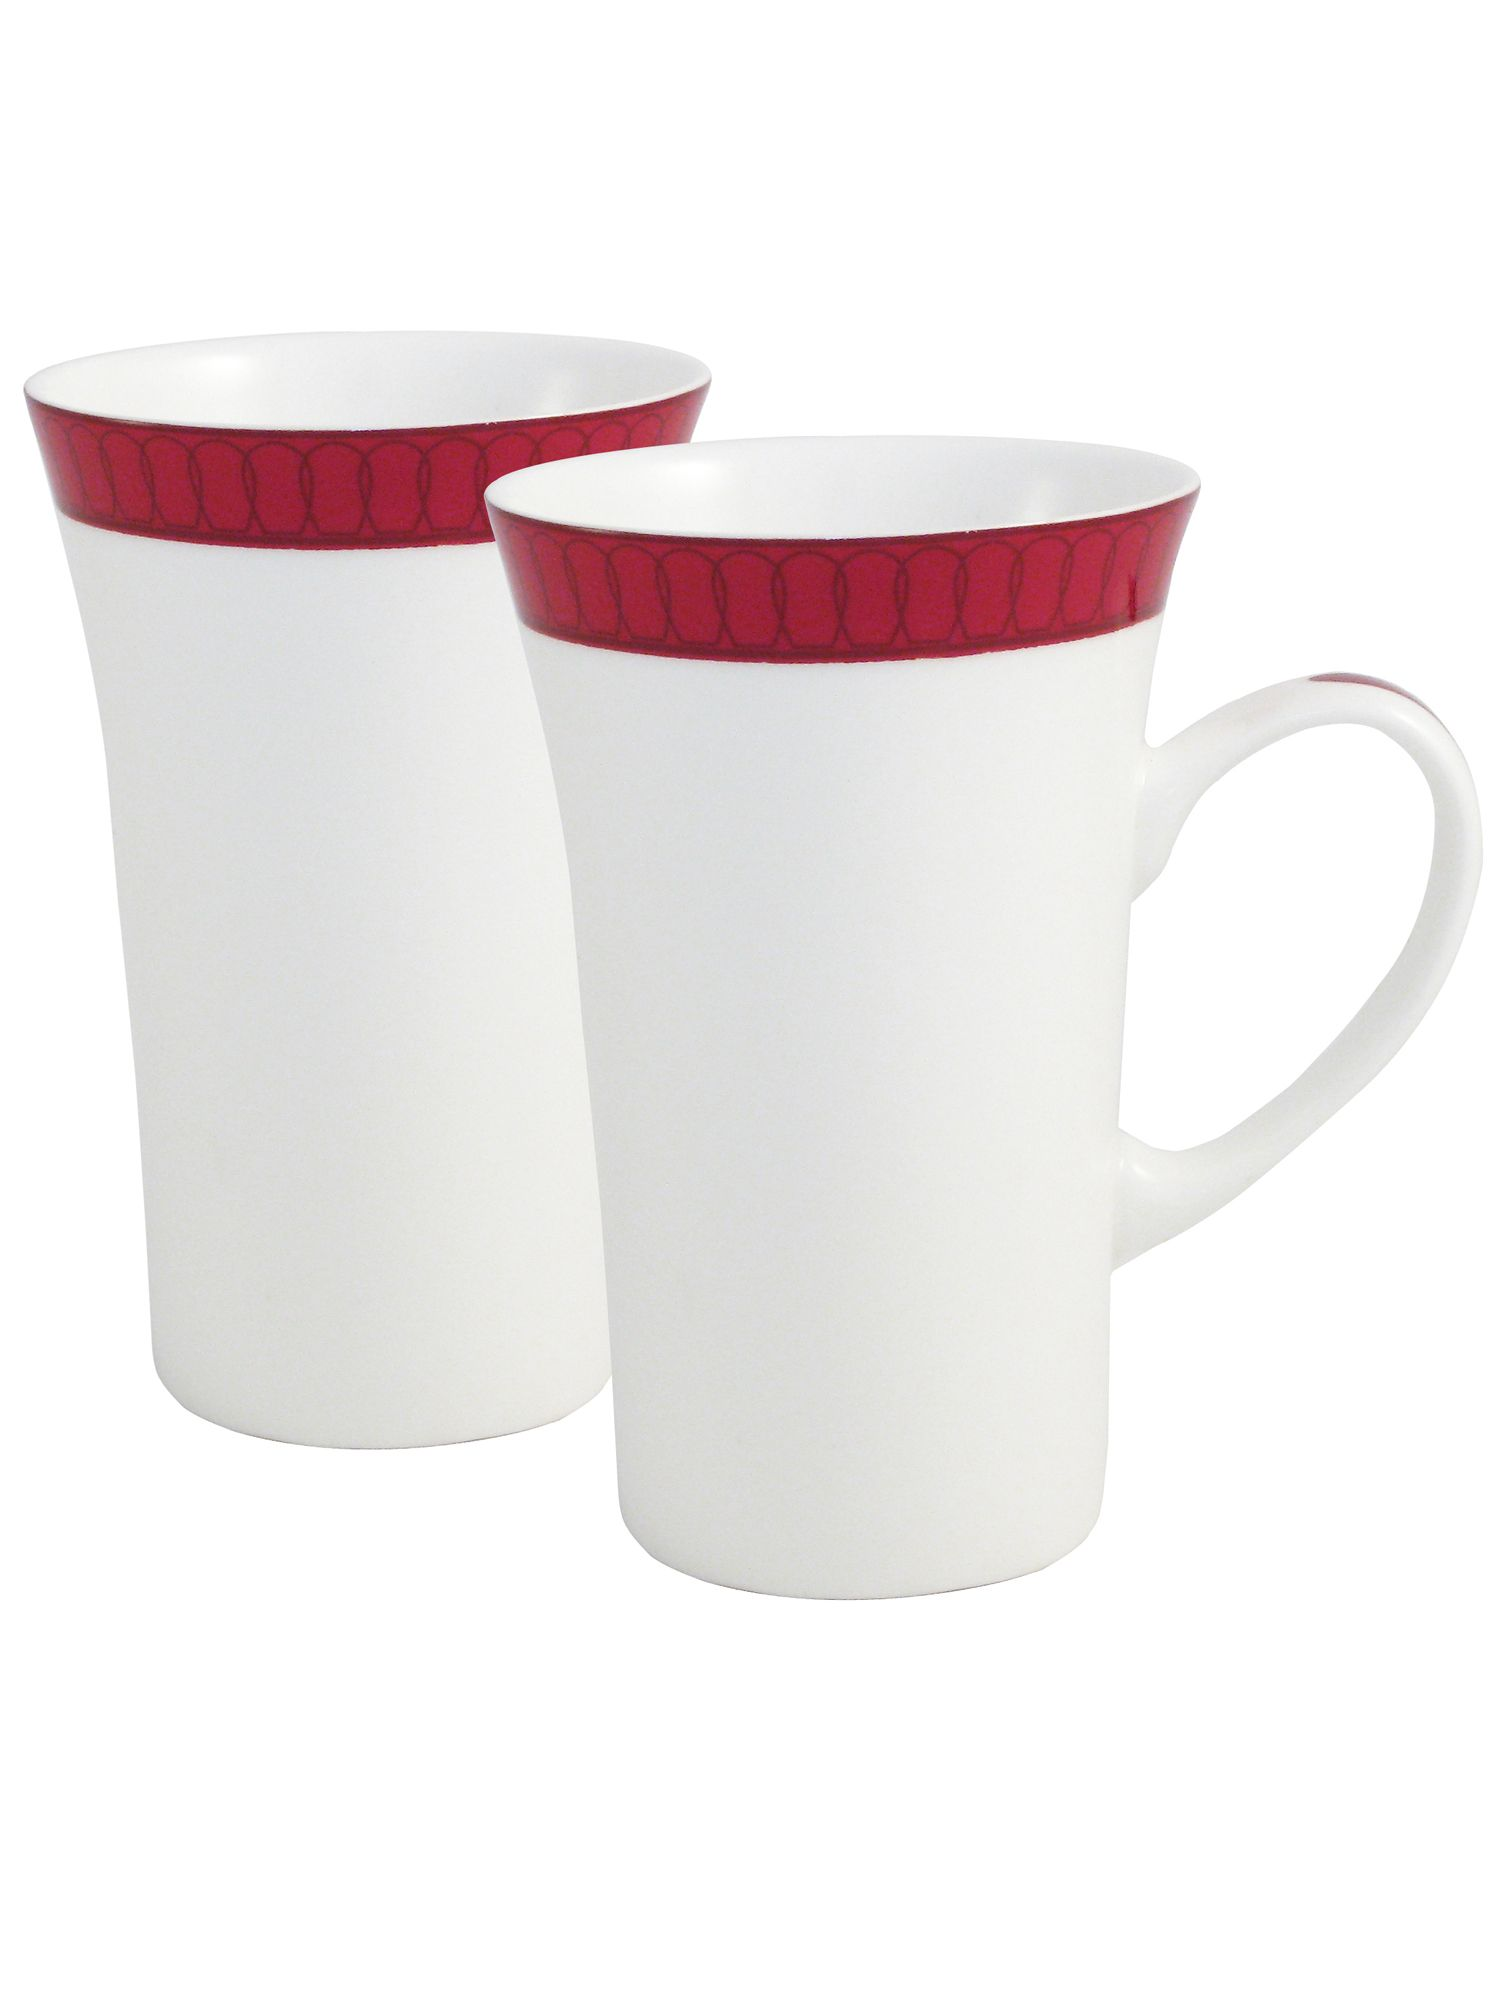 Aynsley Aynsley Madison two latte mugs